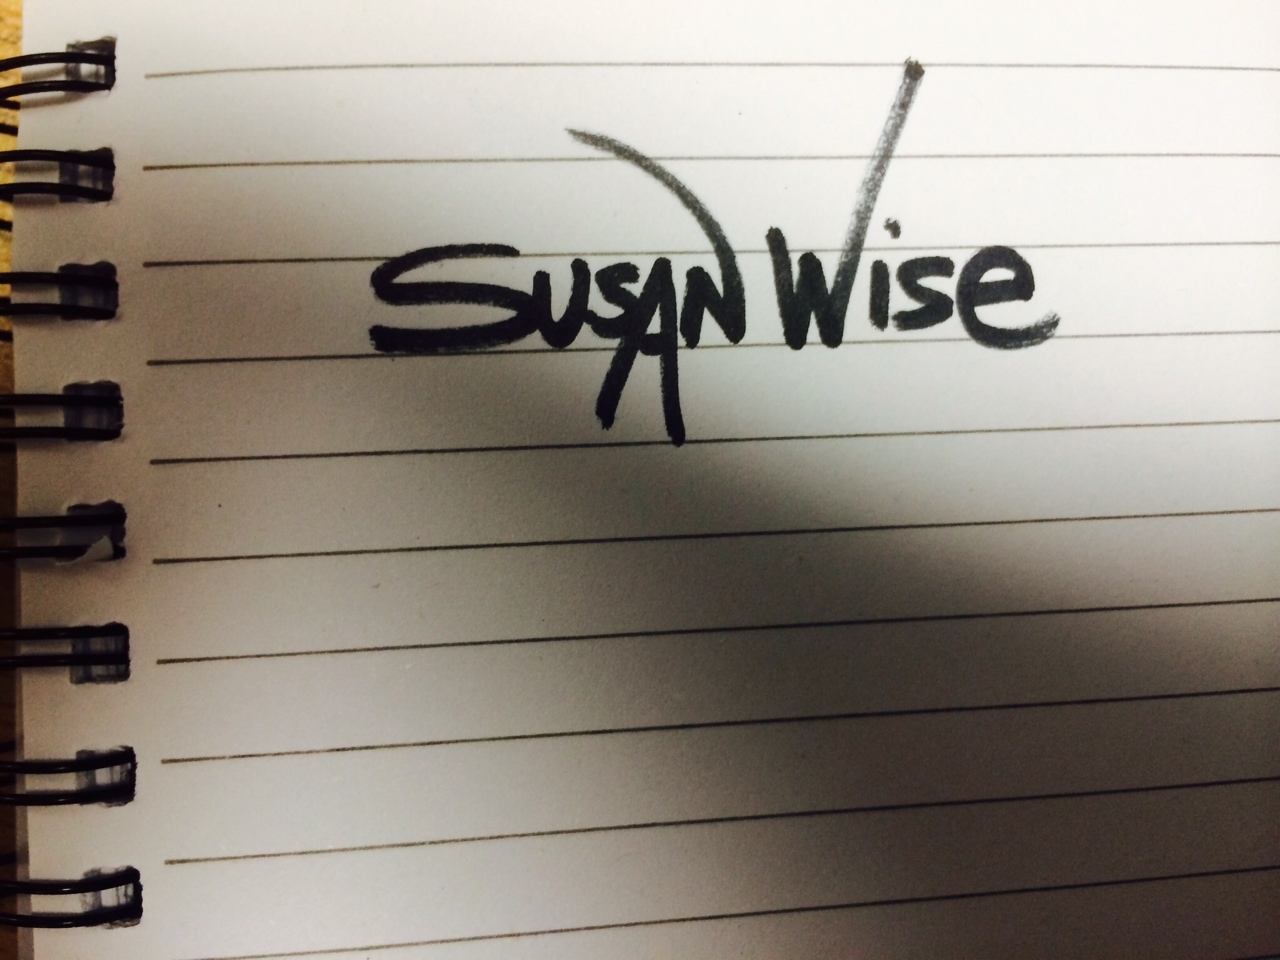 Susan Wise's Signature